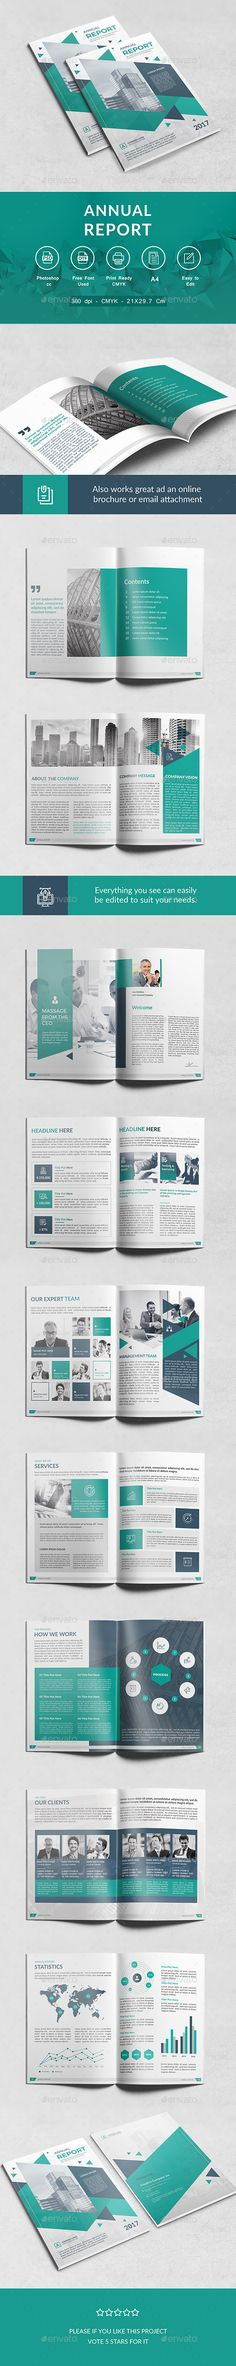 Annual Report Template II on Behance Graphic design Pinterest - report template